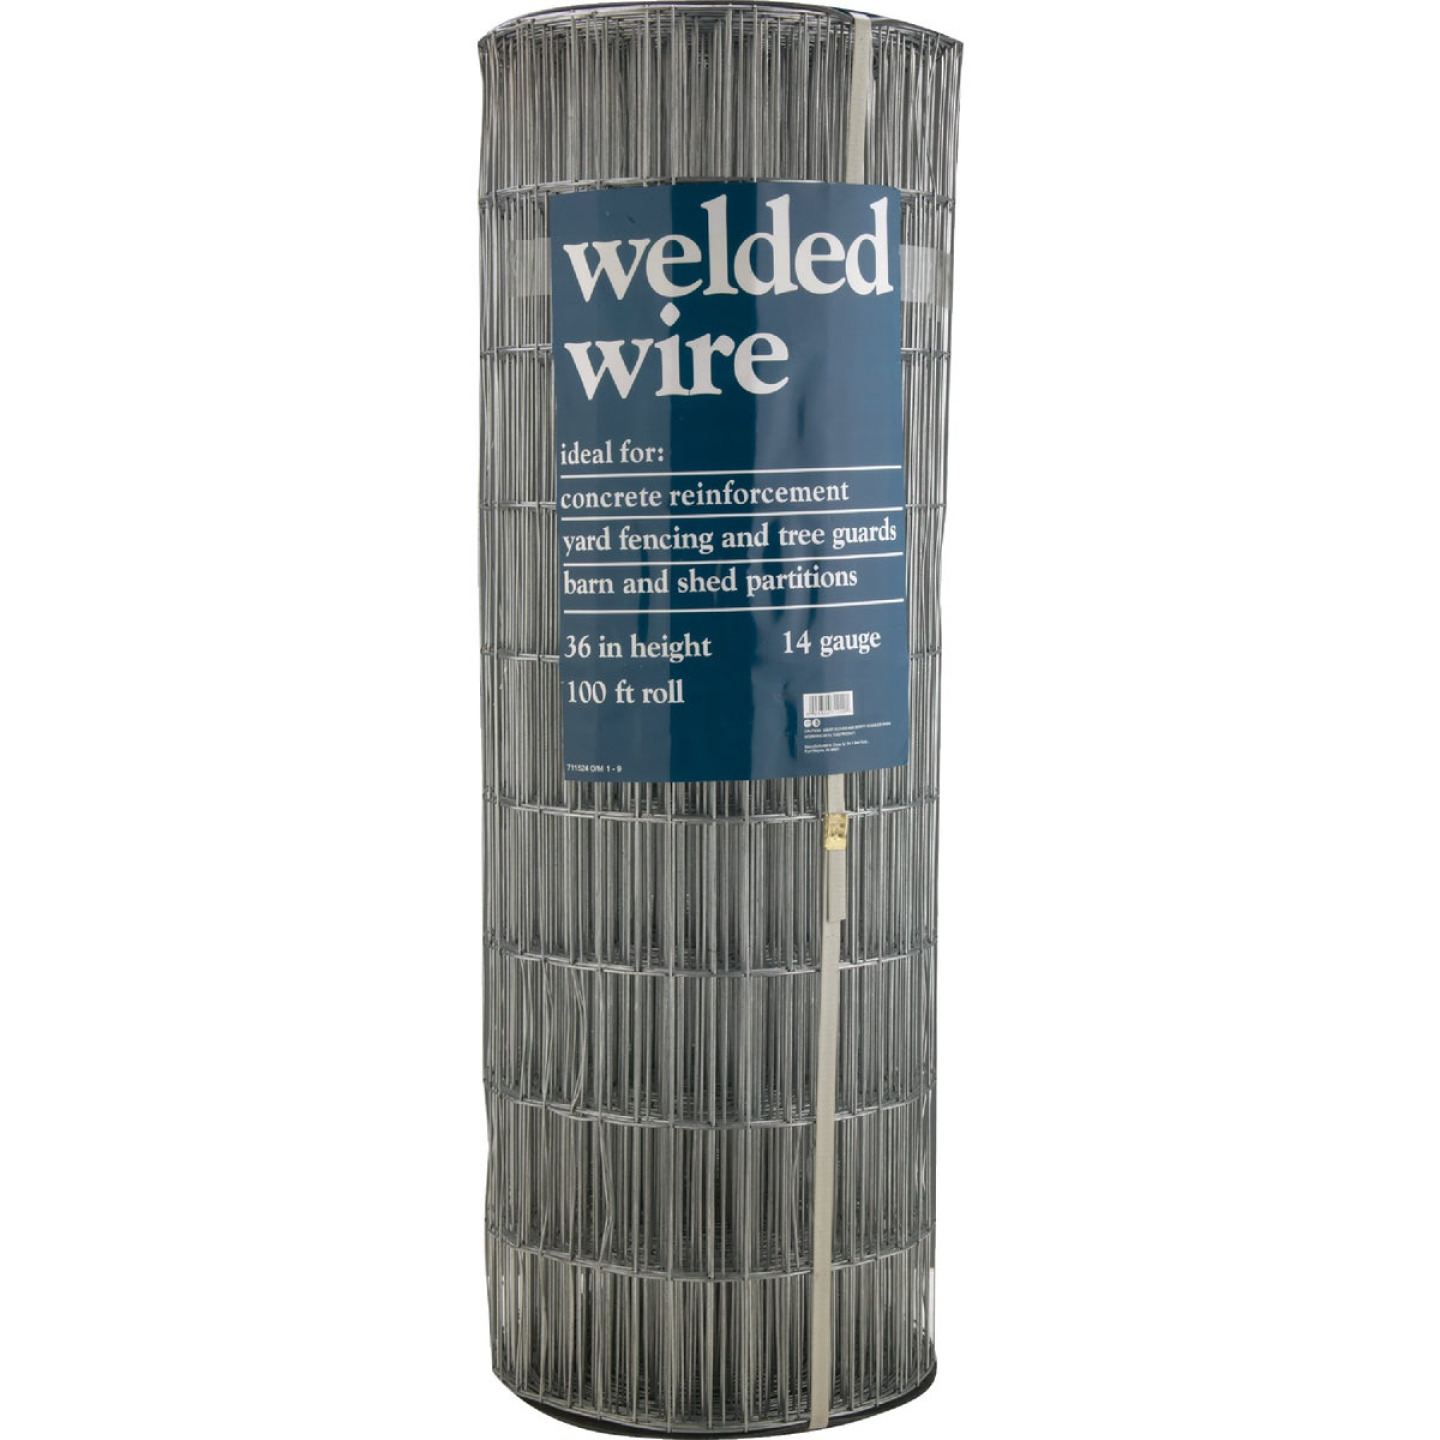 48 In. H. x 100 Ft. L. (2x4) Galvanized Welded Wire Fence Image 2